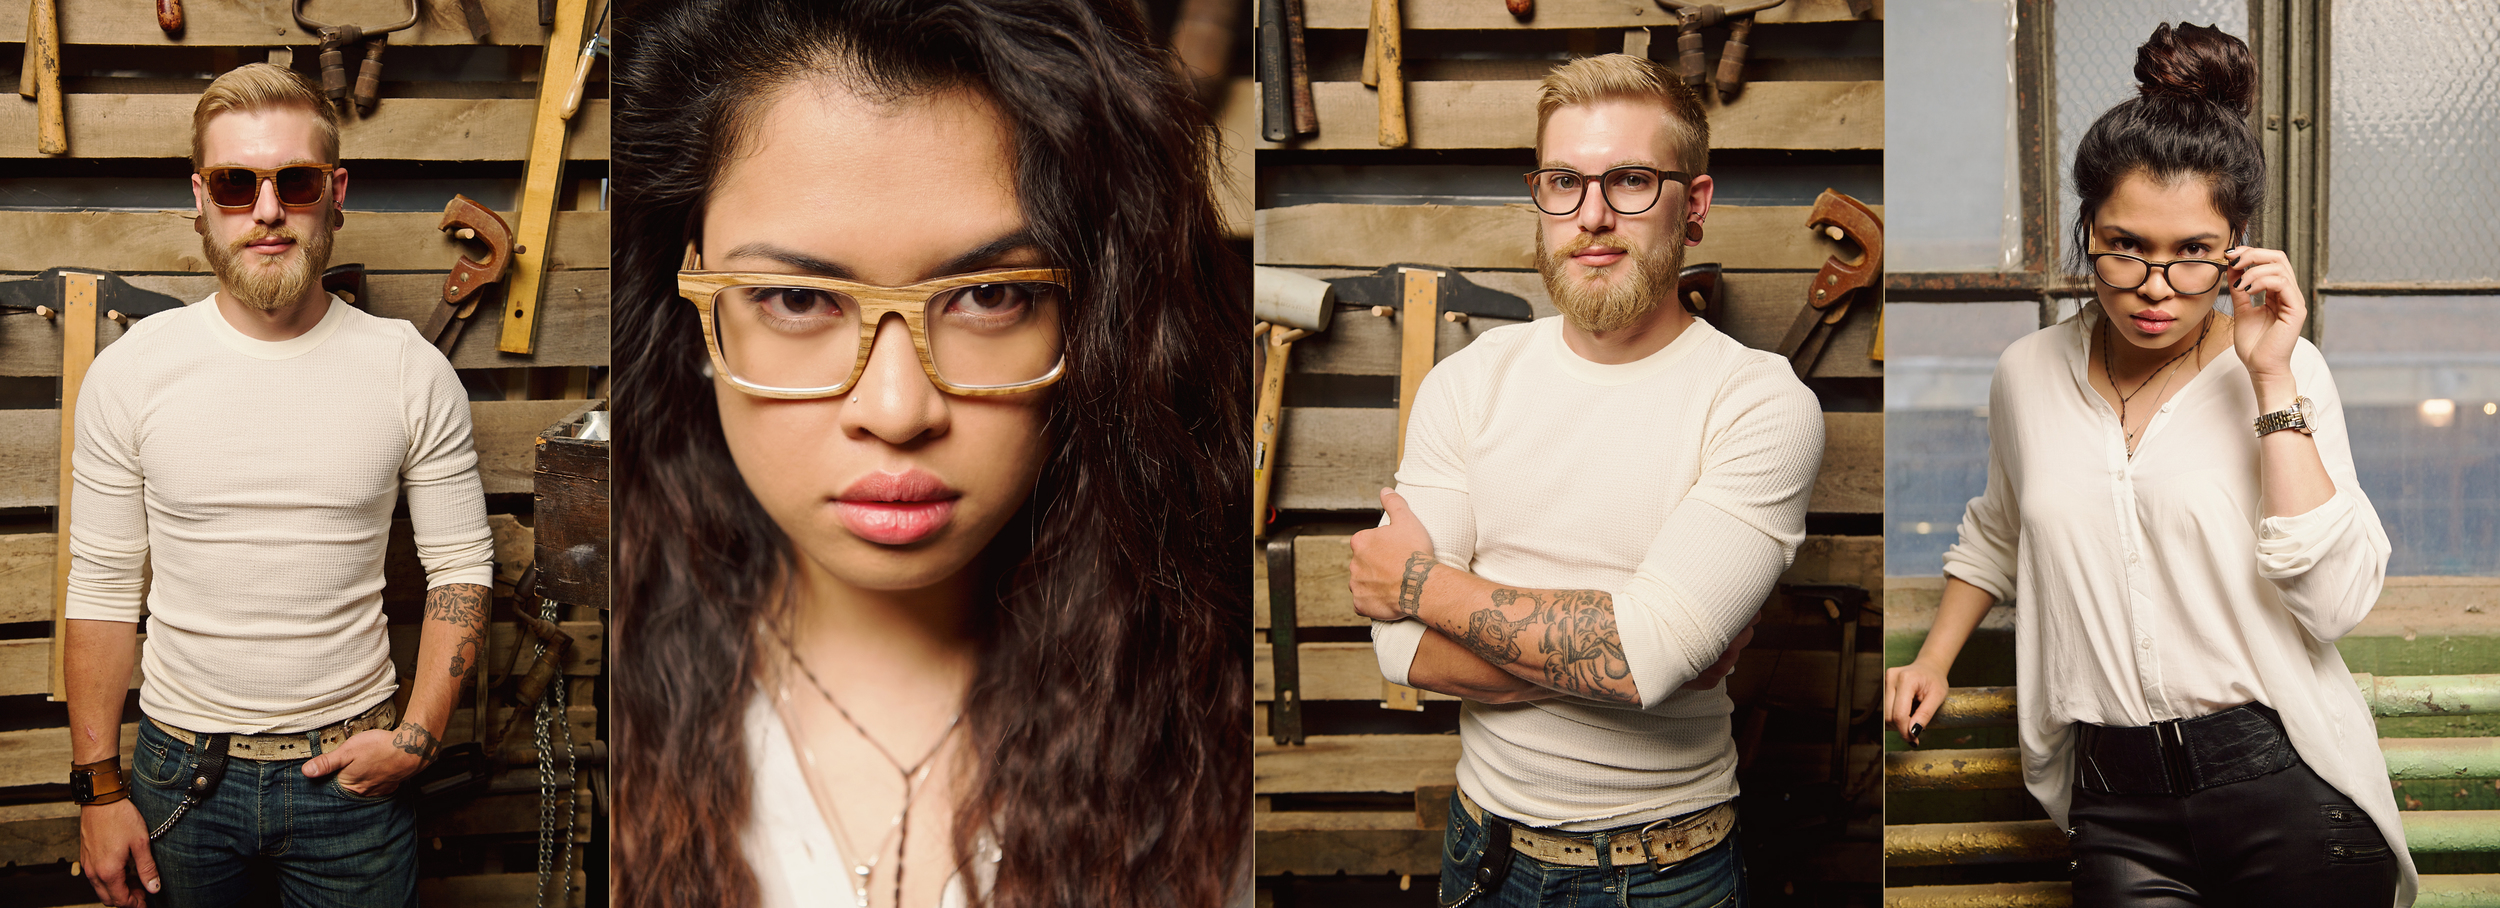 Ryan yargo; riz; lacerna; drew bradsord; Brandon McKee Davis; sharklion; detroit; Independent; Design; Manufacturing Co.; Wooden; Eyewear; Handcrafted; Detroit; Michigan; glasses; advertising